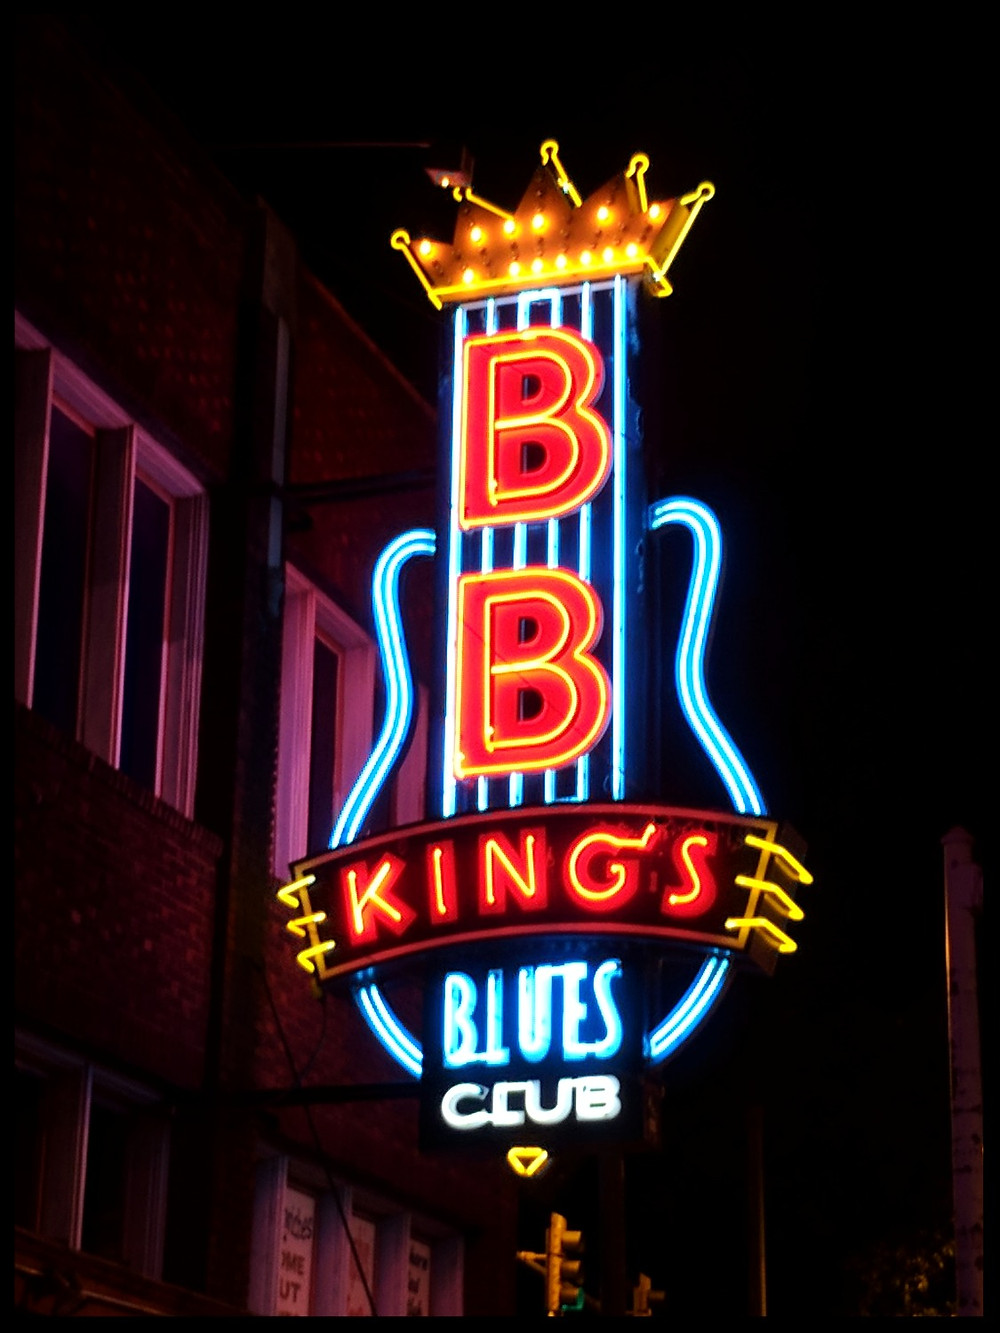 B. B. King's Blues Club, Beale Street, Memphis